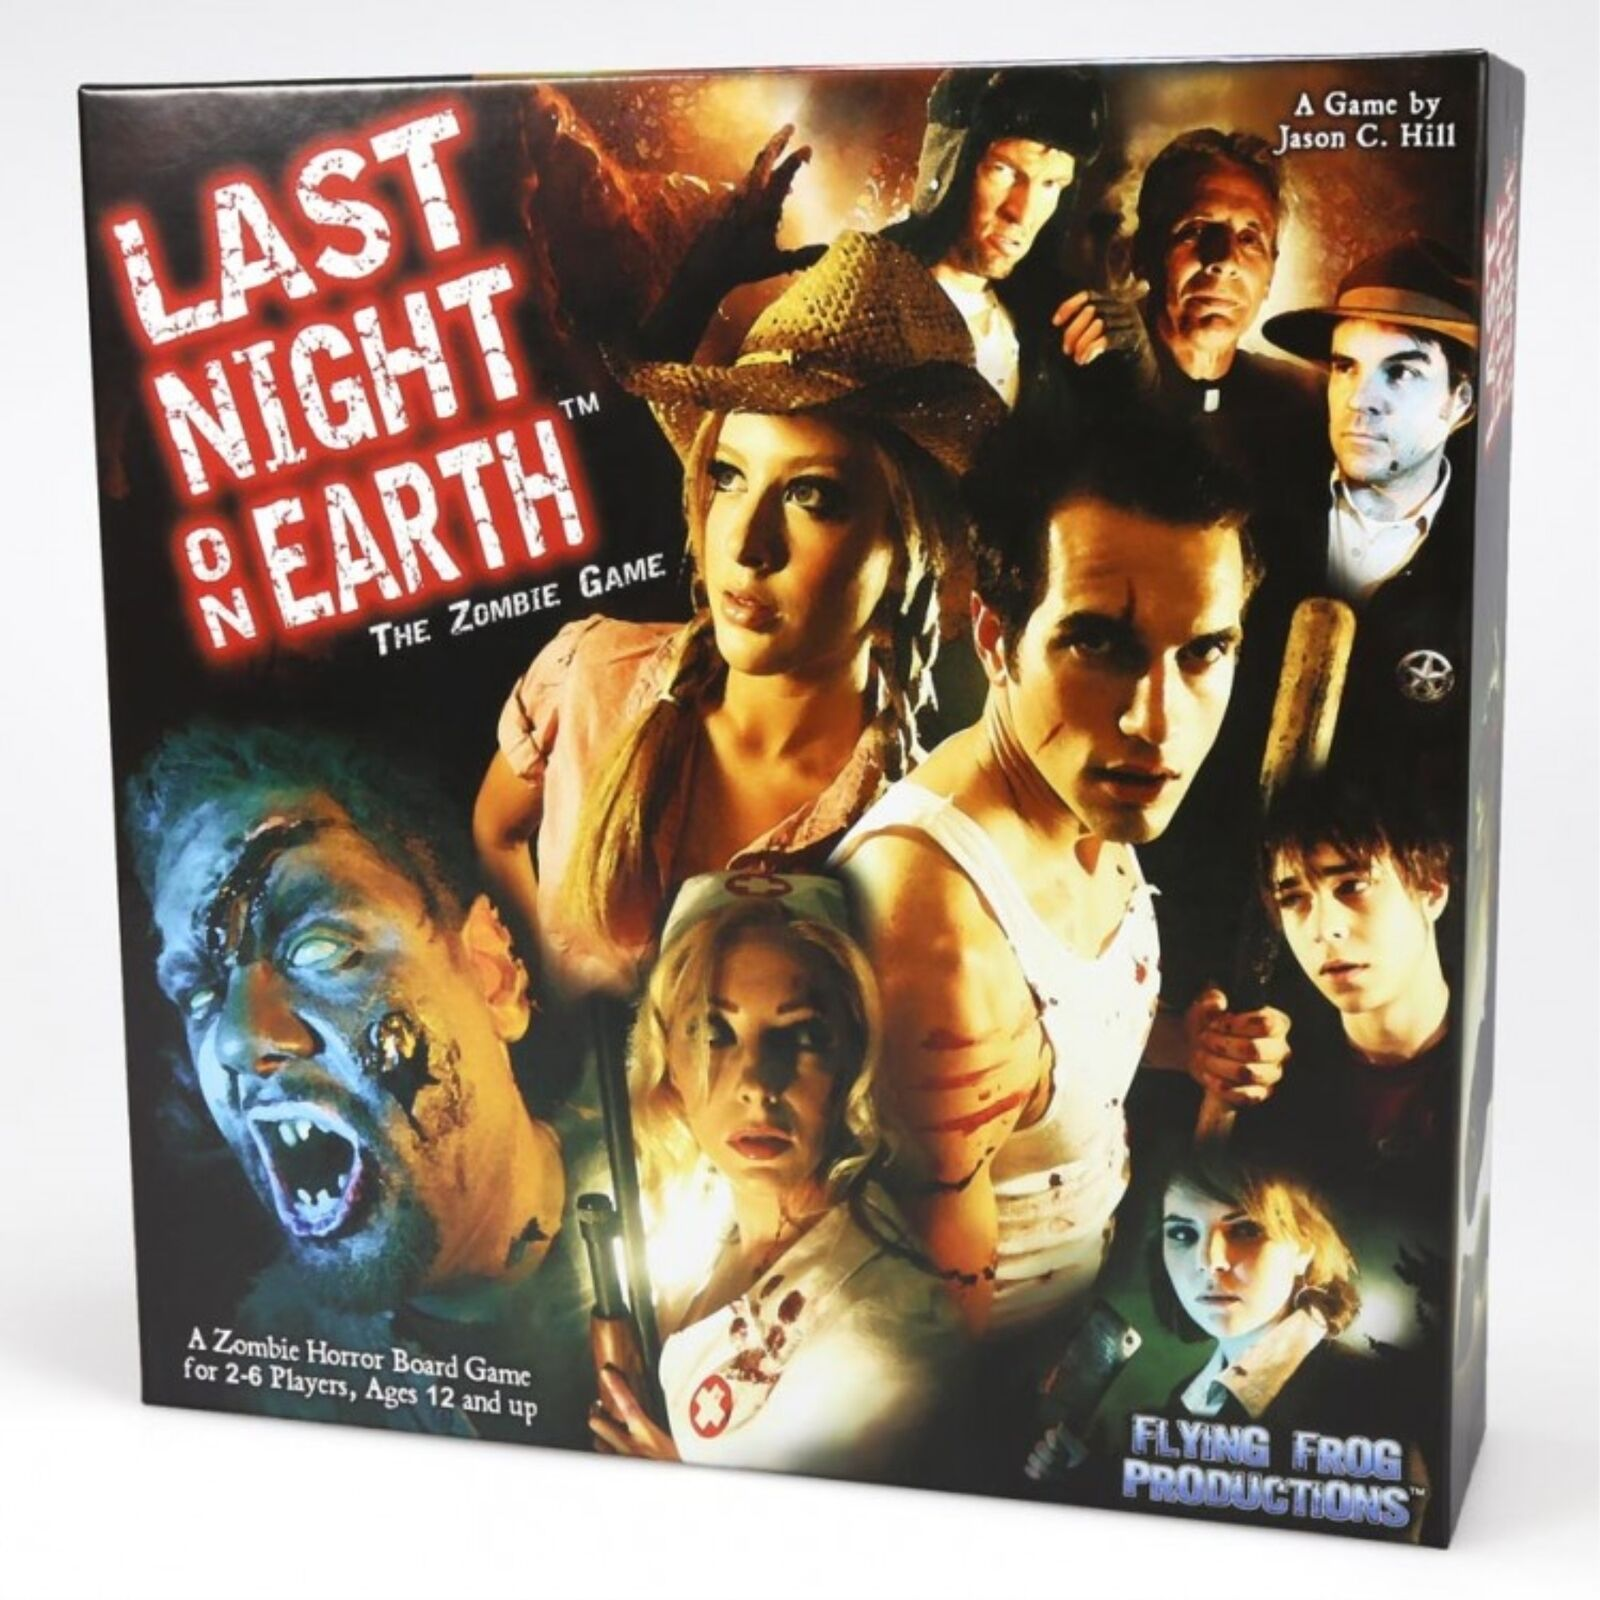 Last Night on Earth, The Zombie Juego